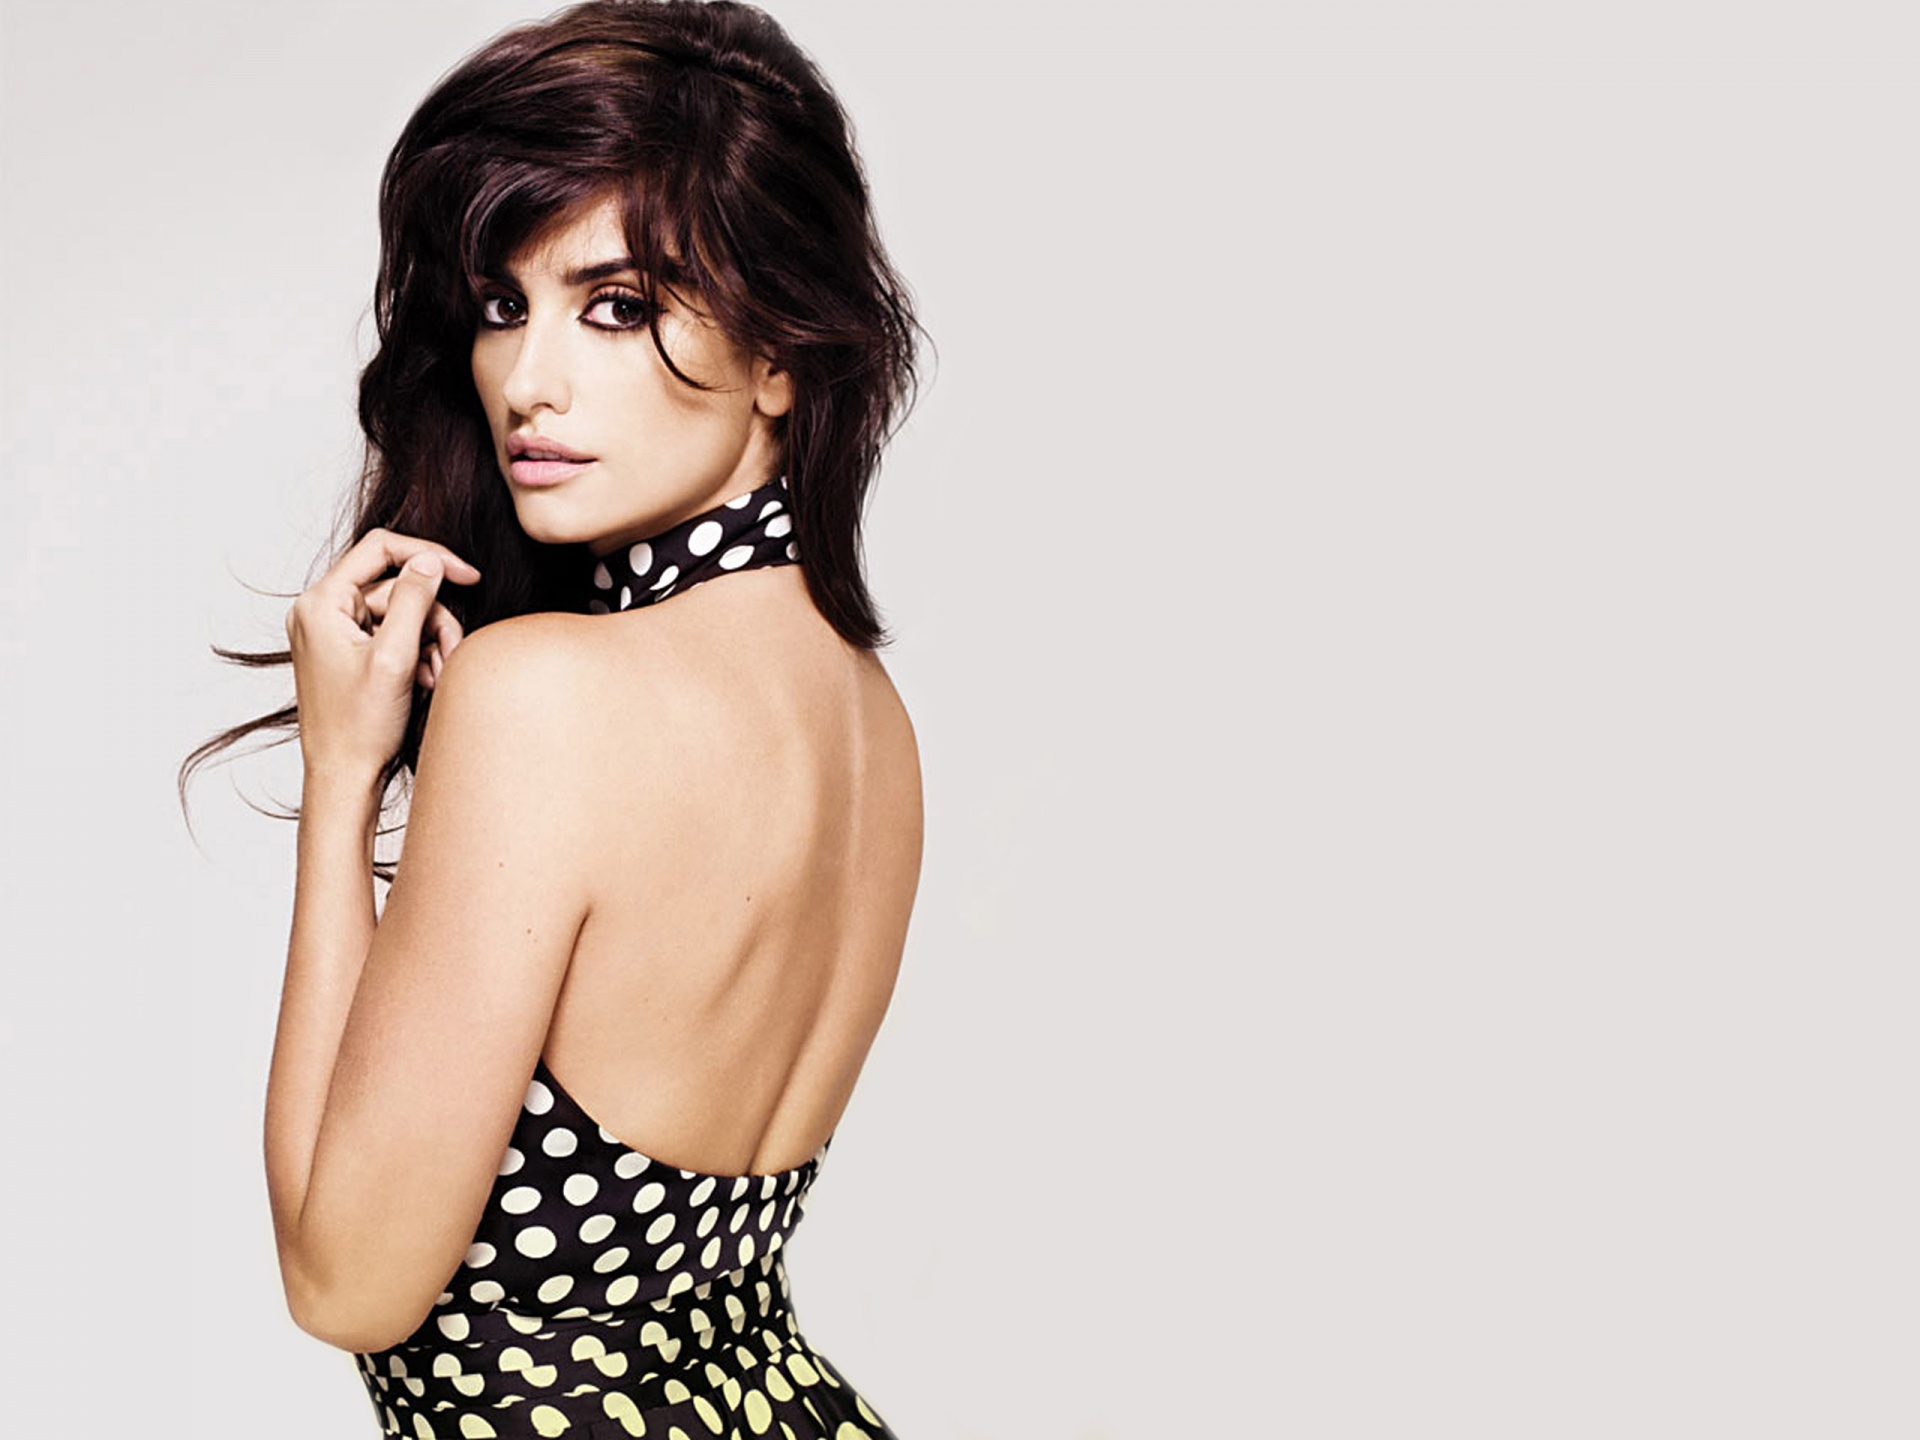 penelope cruz wallpapers hd A4